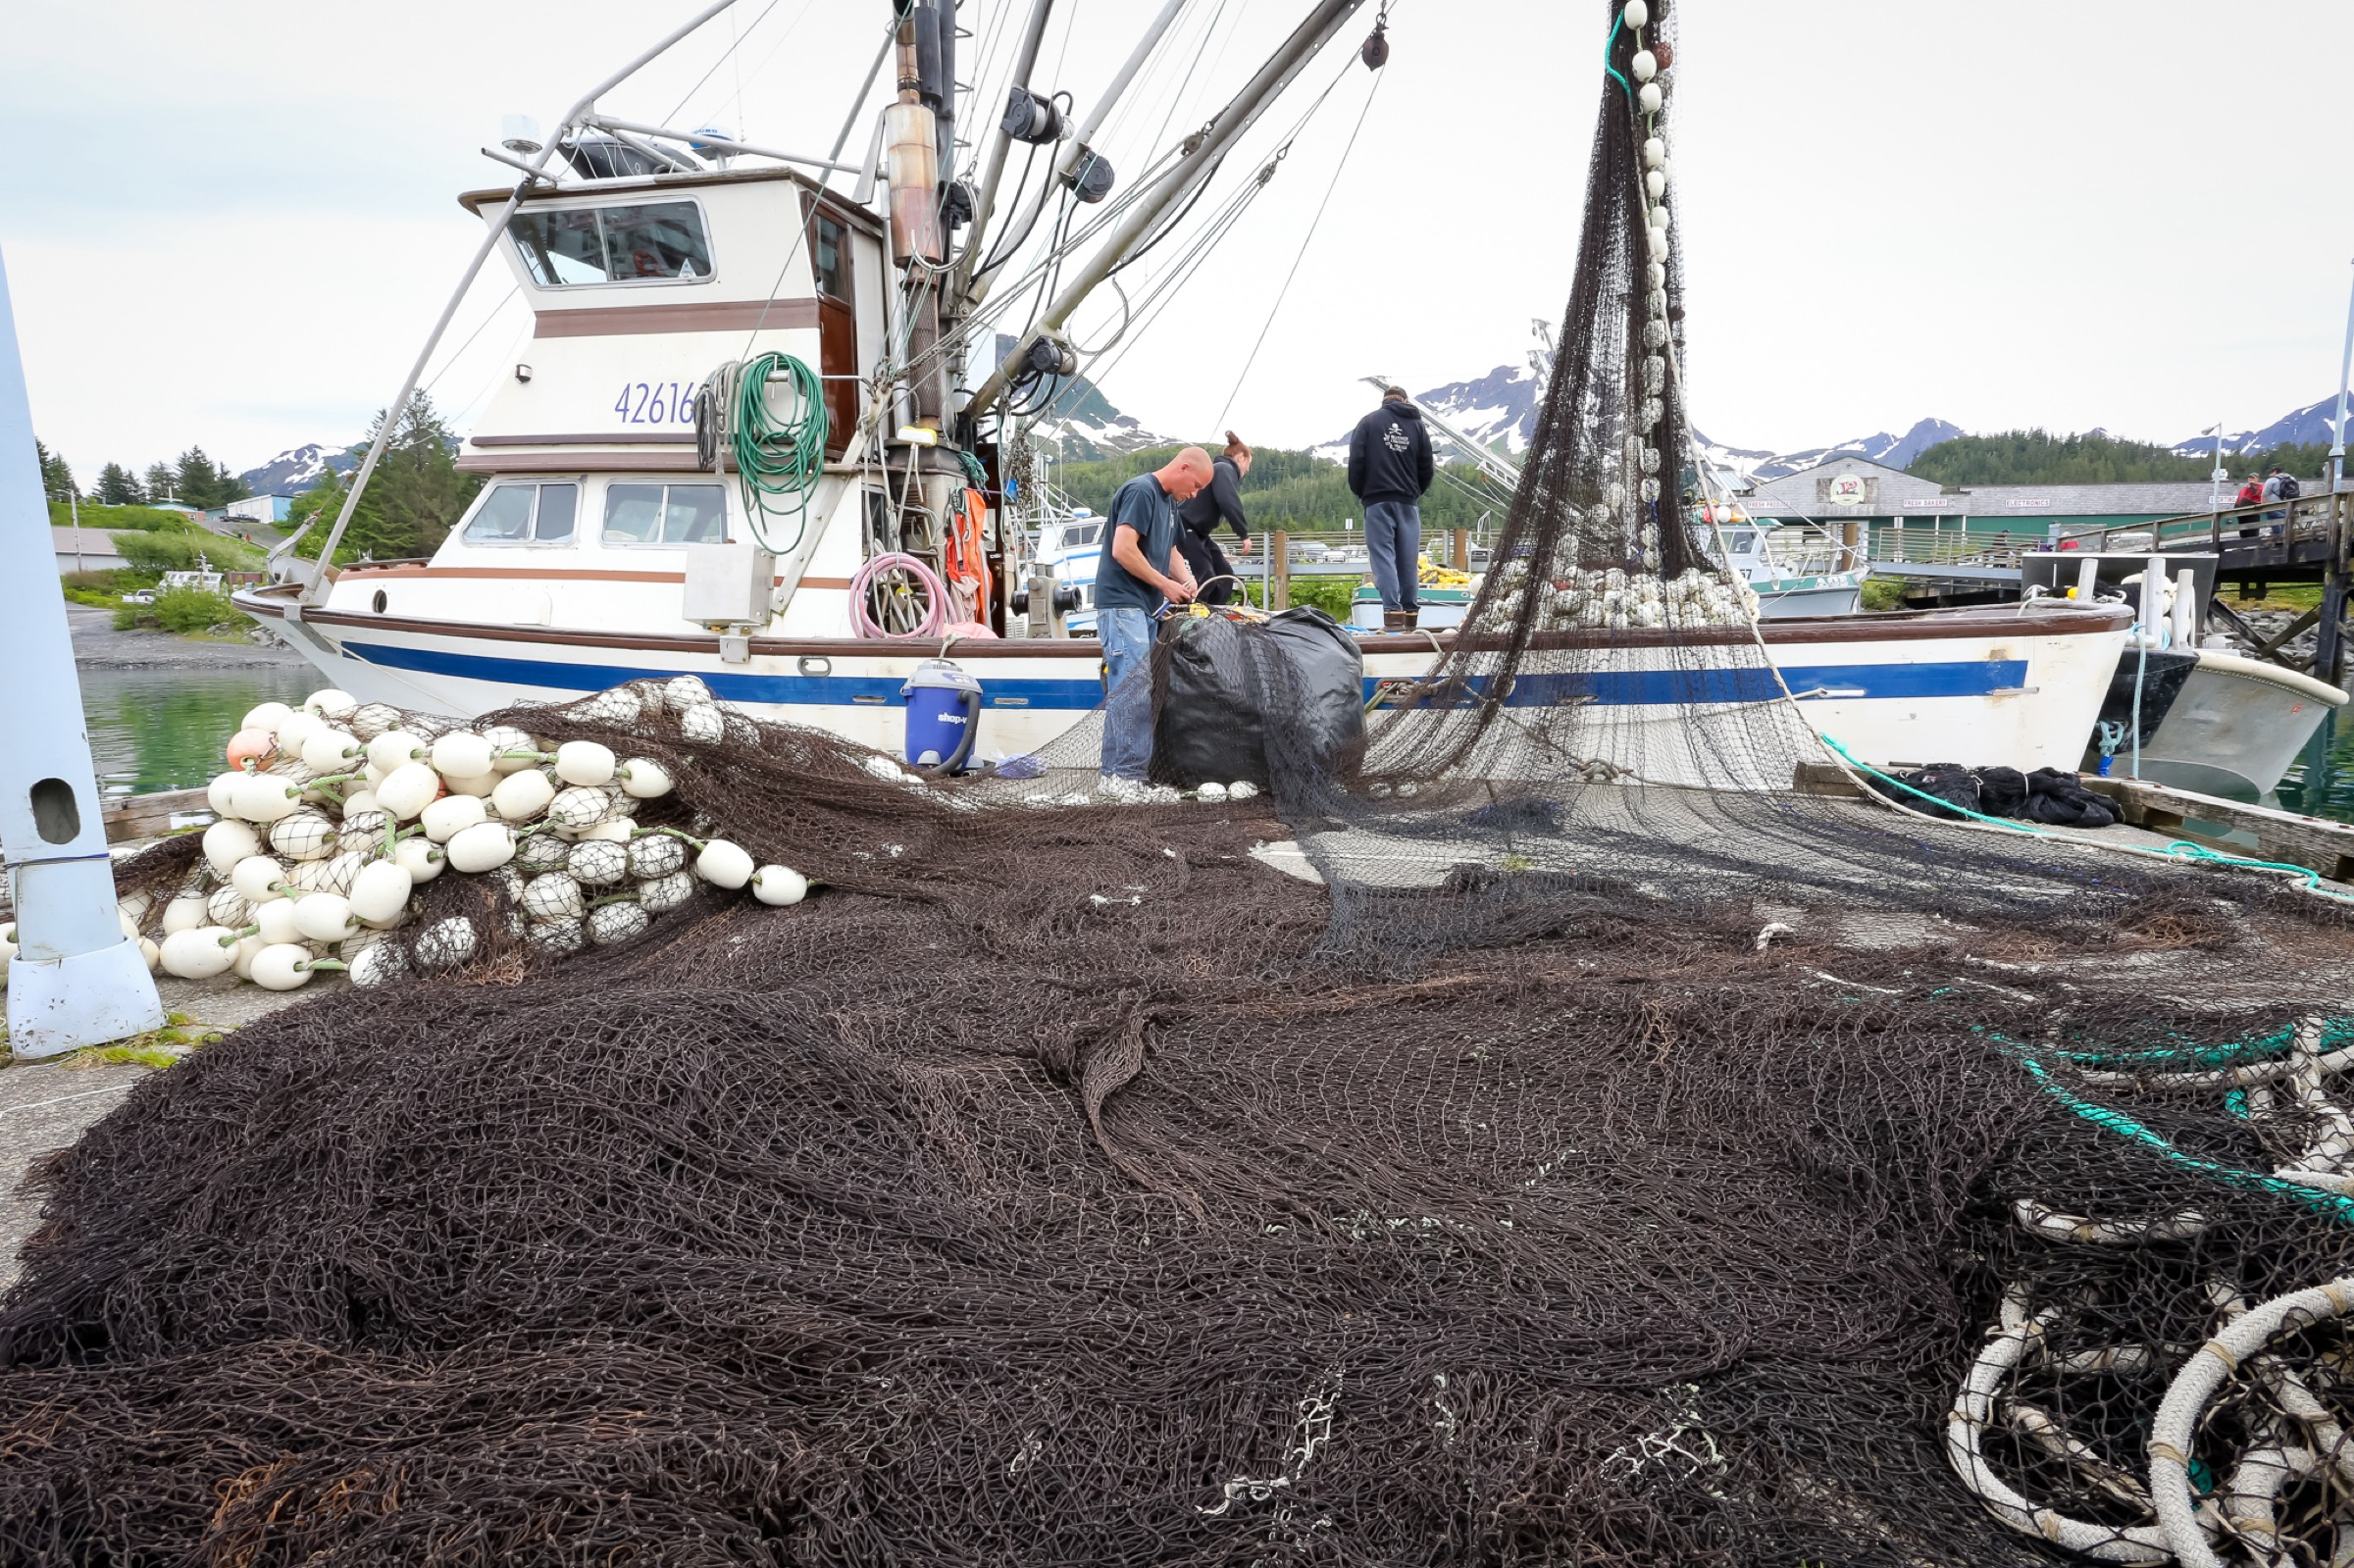 John Renner's crew mends nets in preparation for an upcoming salmon opener. Photograph by Julia Rosen